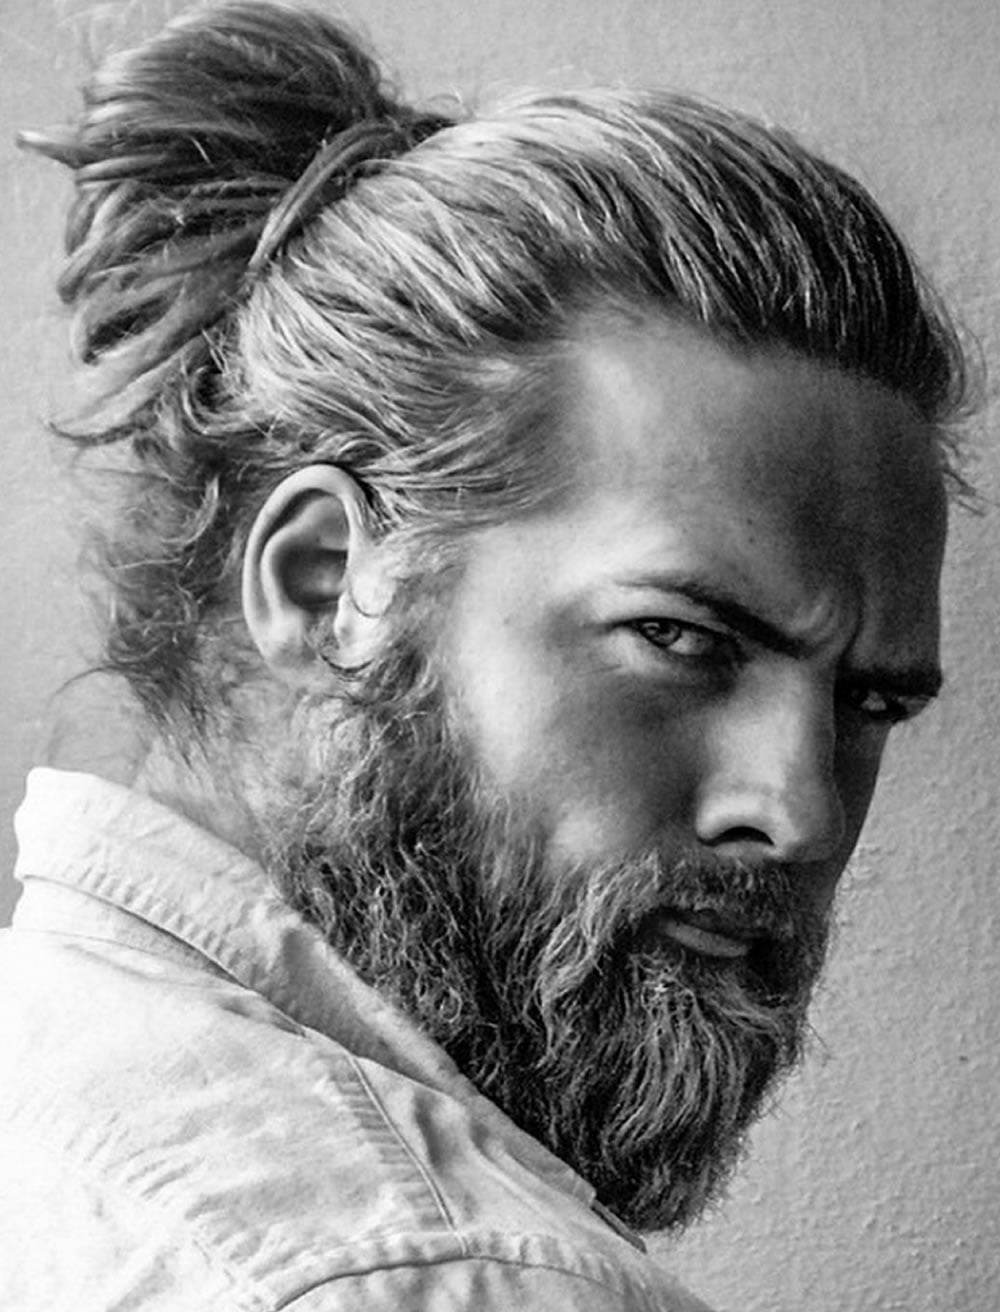 Hairstyles for Men 2018 - Best Haircut Ideas for Guys